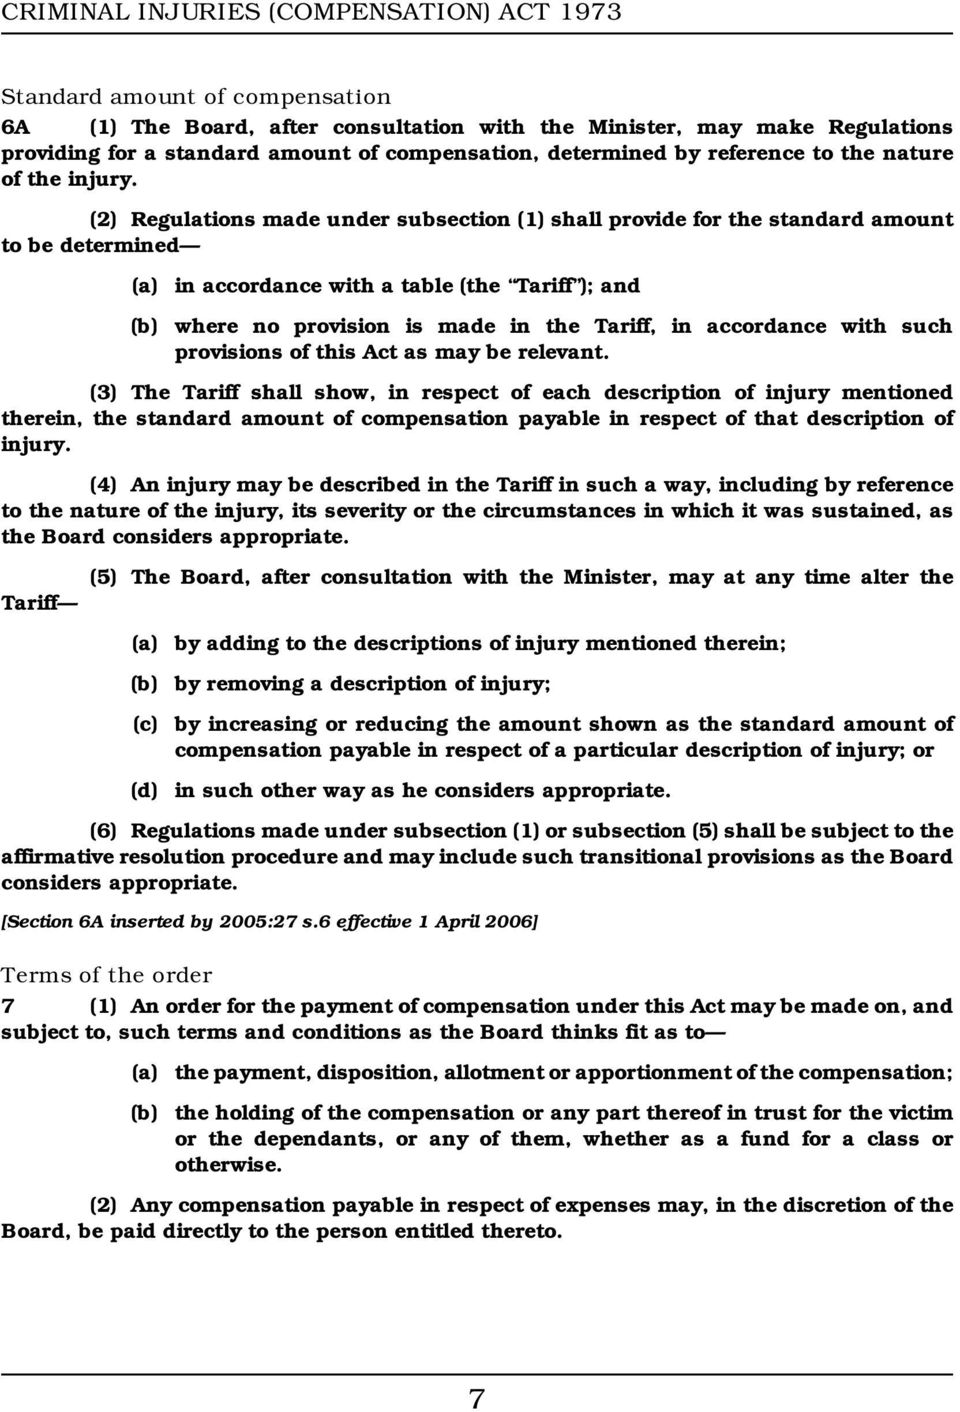 (2) Regulations made under subsection (1) shall provide for the standard amount to be determined in accordance with a table (the Tariff ); and where no provision is made in the Tariff, in accordance